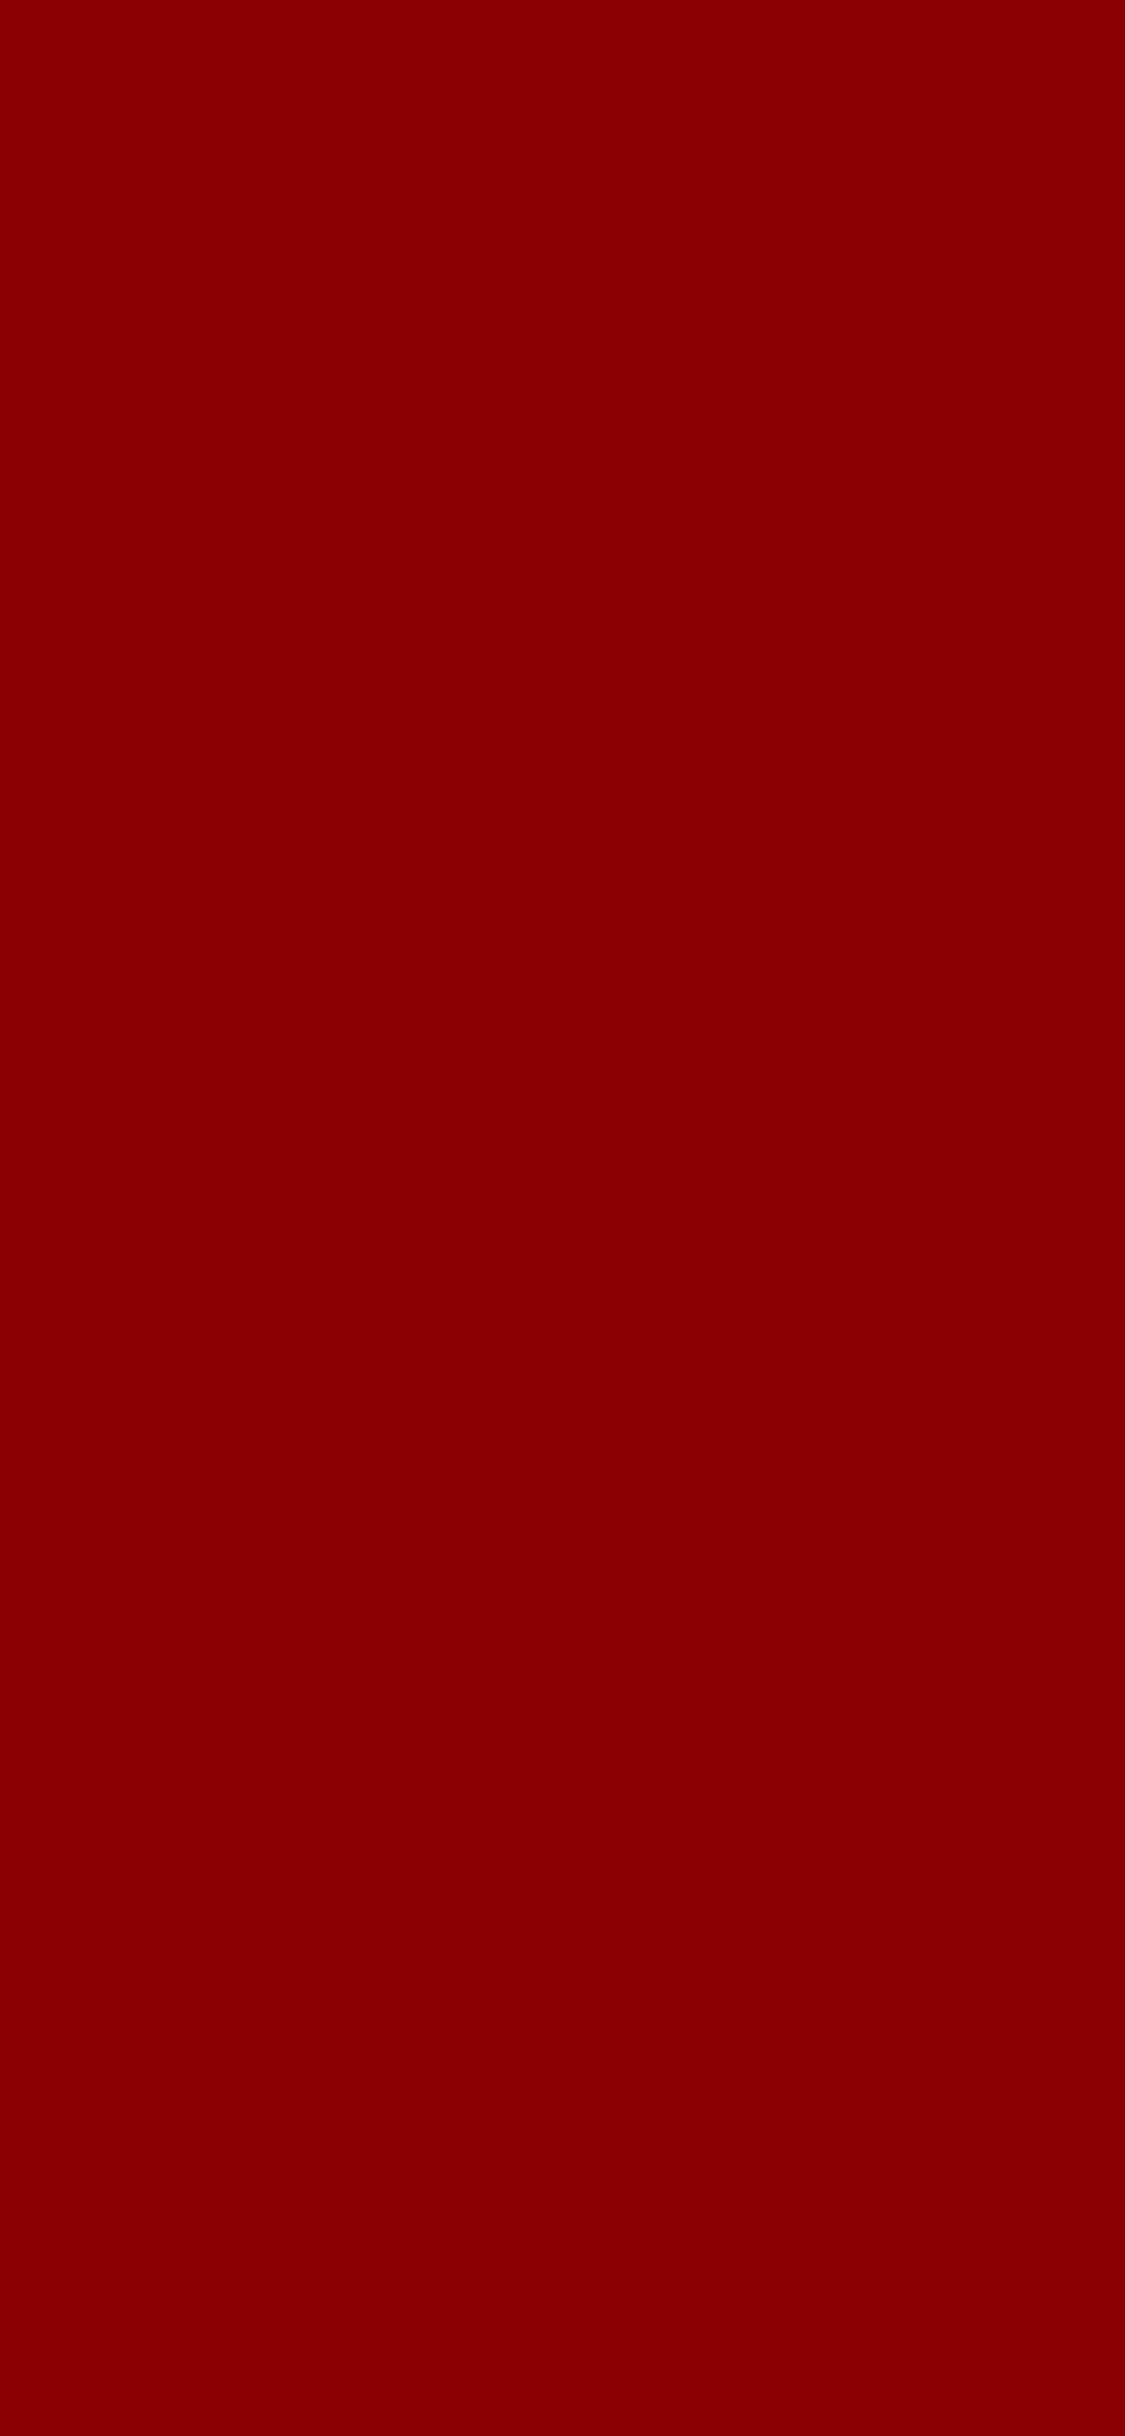 1125x2436 Dark Red Solid Color Background